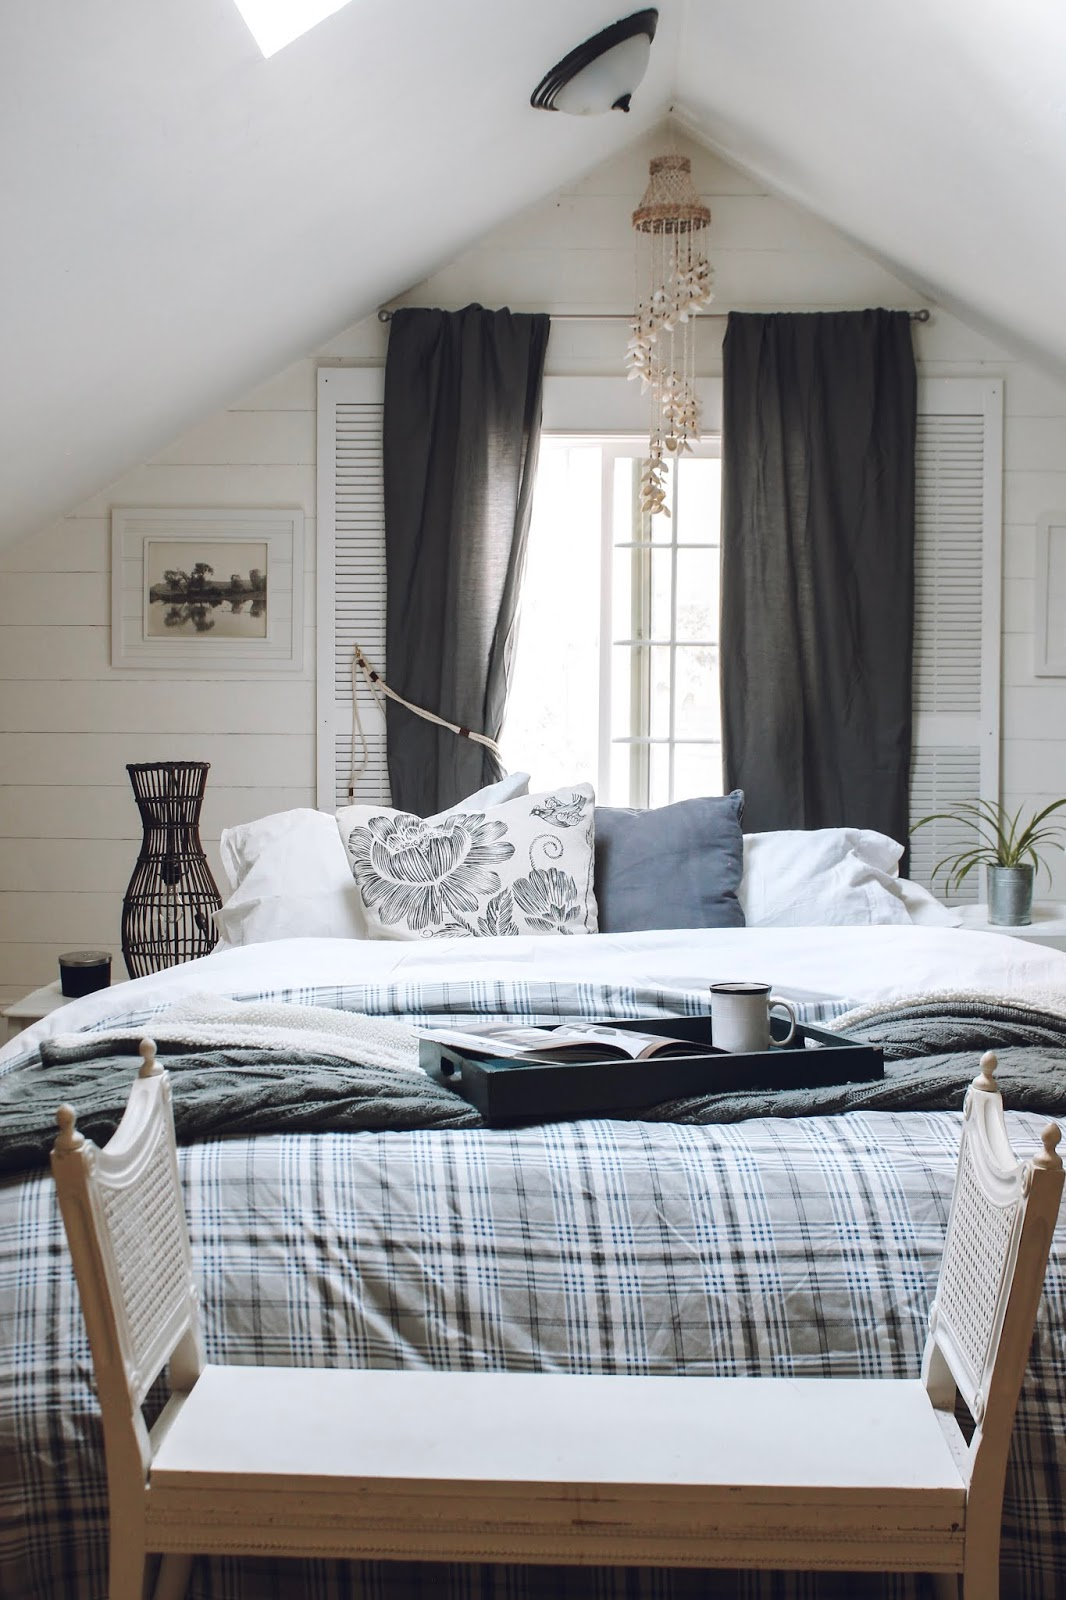 Ditching My Bed and Other Bedroom Changes